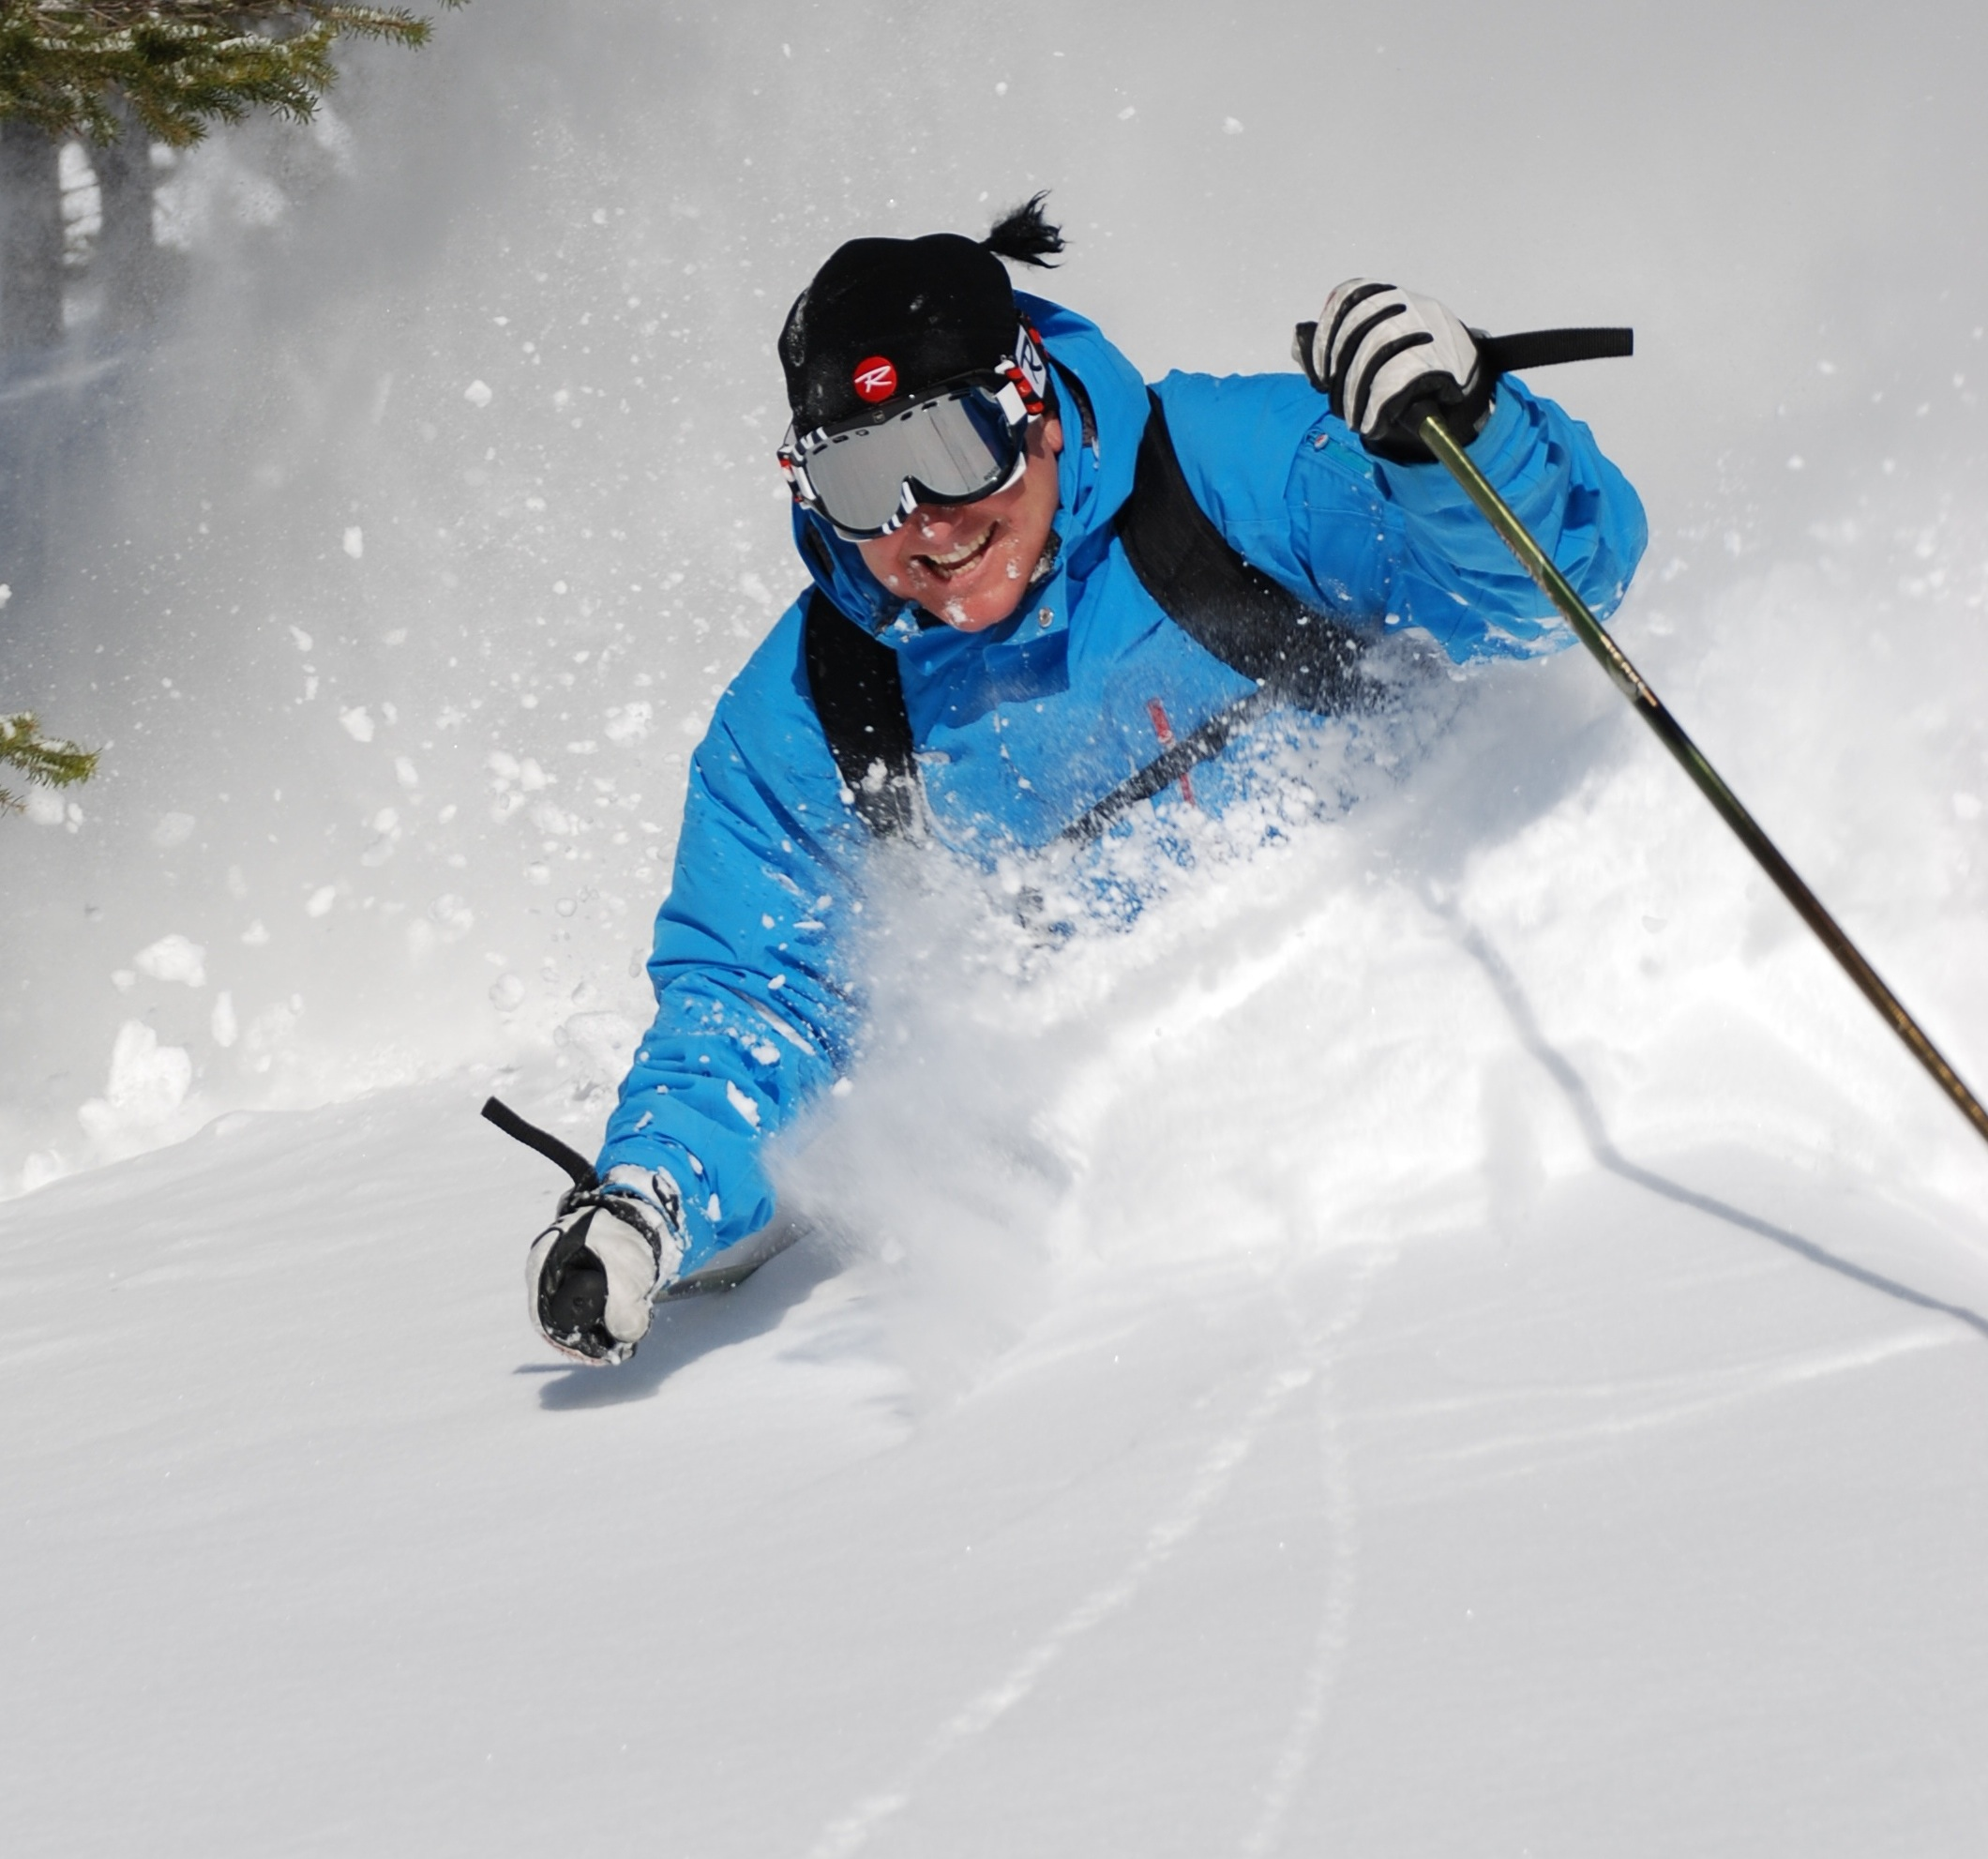 Skiier Deep Powder